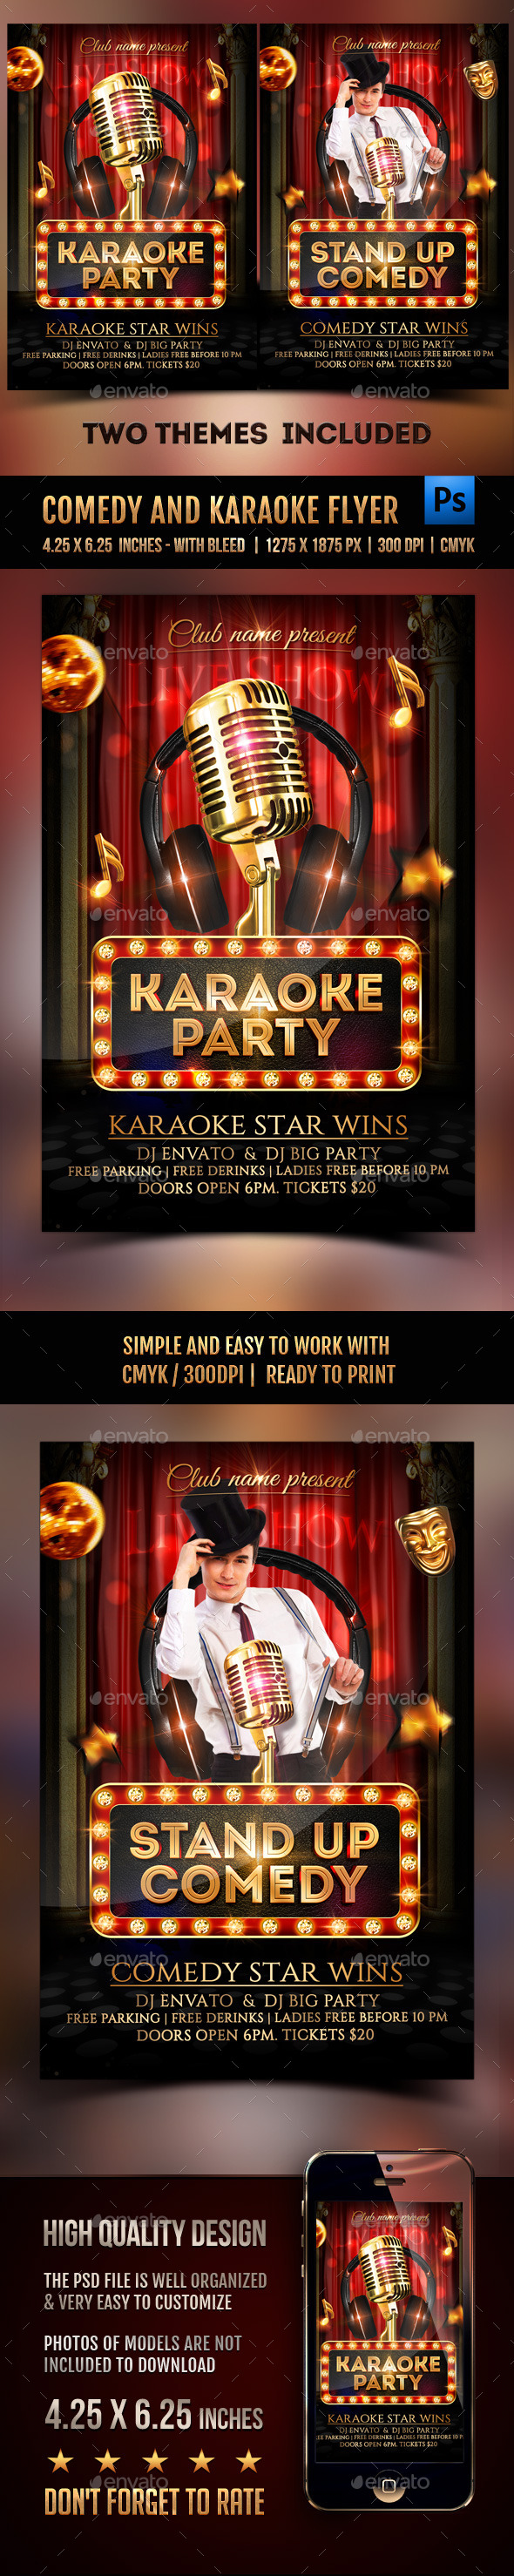 Comedy and Karaoke Party Flyer - Clubs & Parties Events